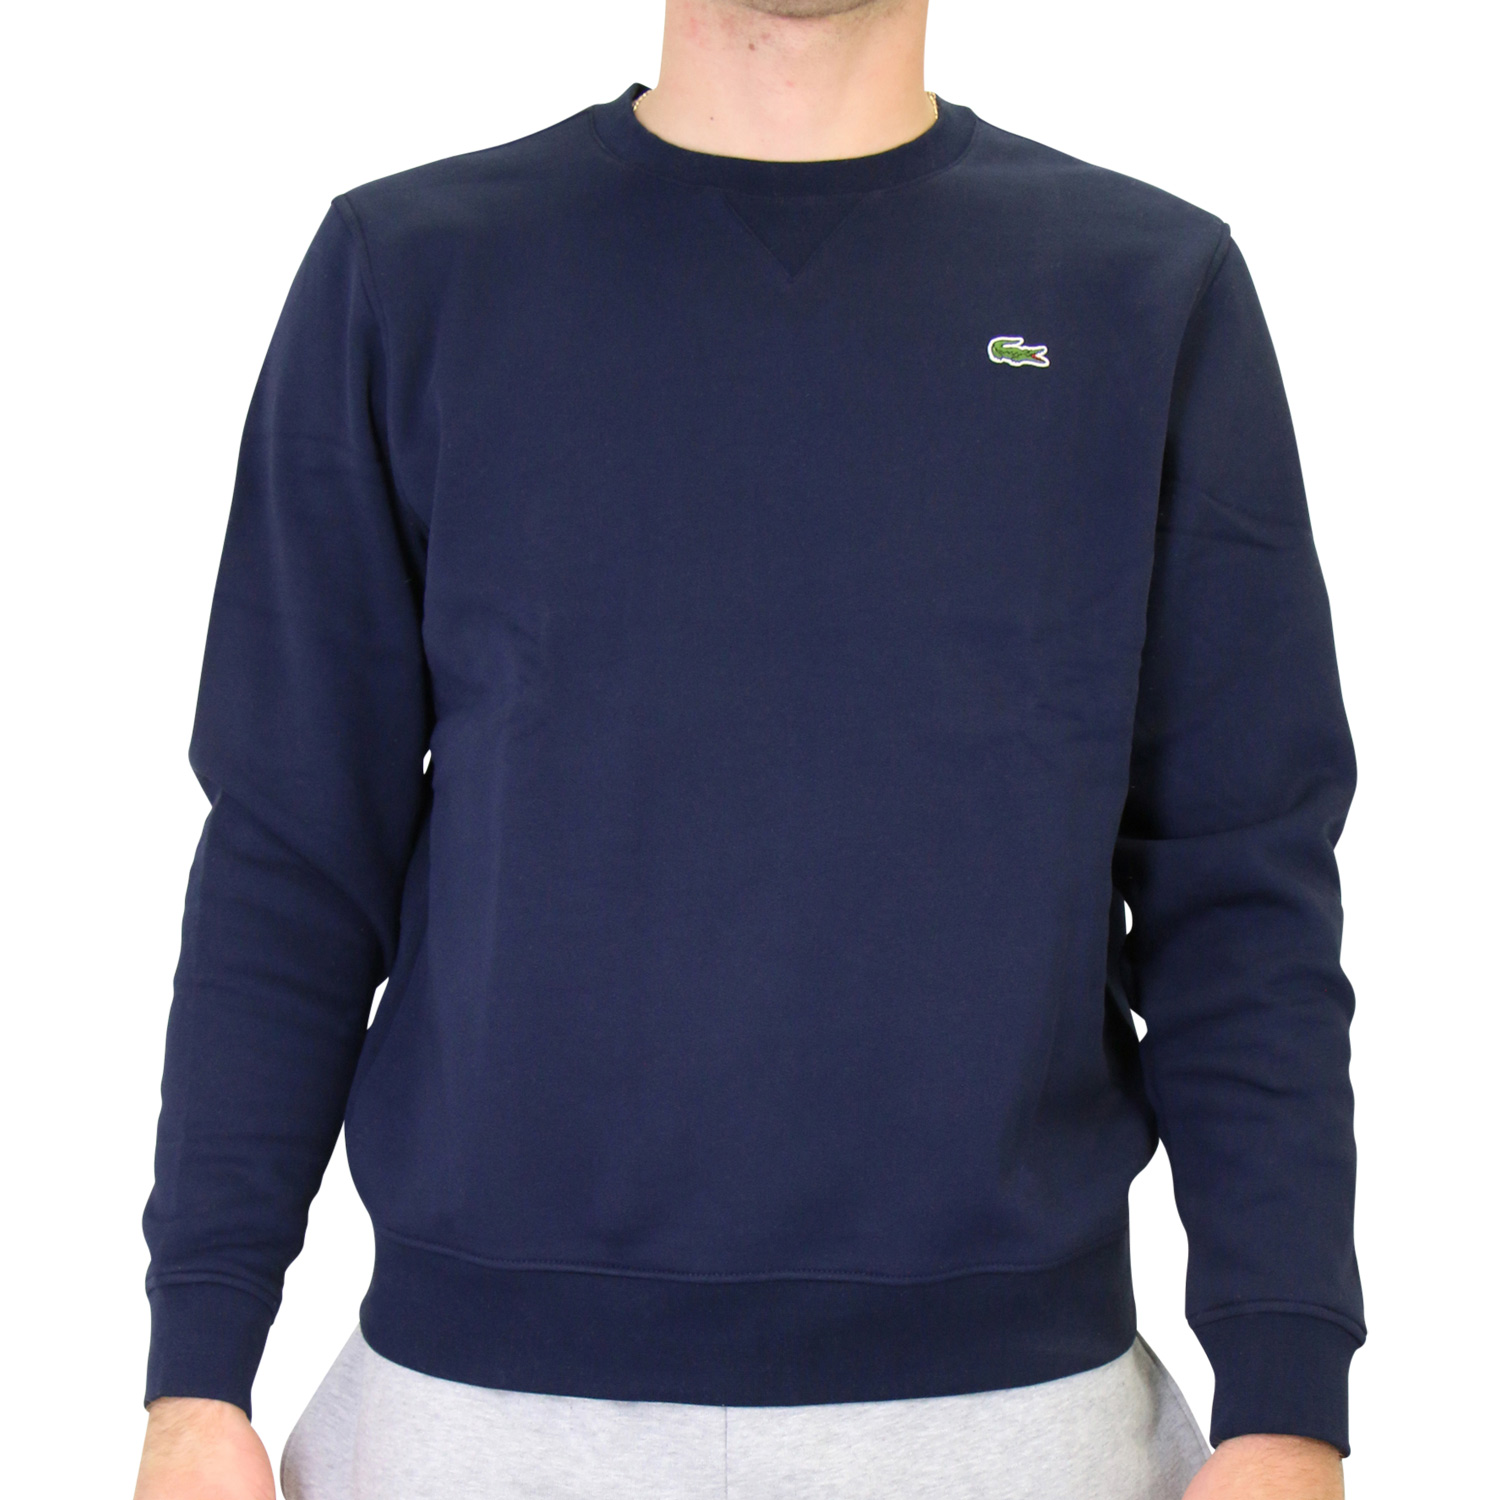 the latest ddecf 853fb Details about Lacoste Sweatshirt Jumper Round Neck Cotton Mens Dark Blue  sh7613 166- show original title